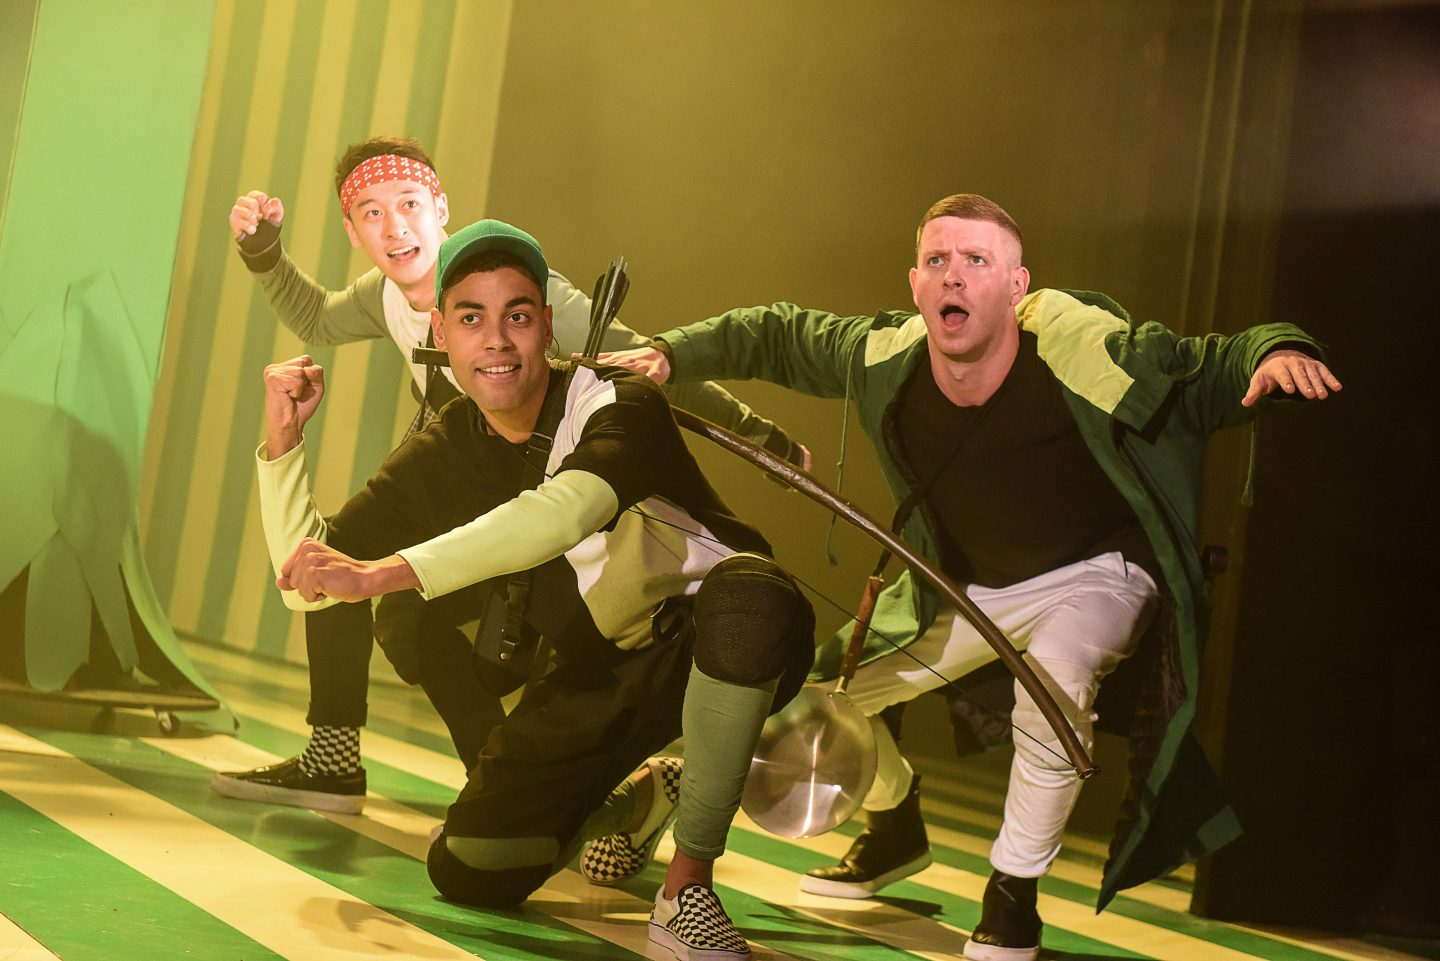 Panto Season 2015: Robin Hood at the Theatre Royal Stratford East